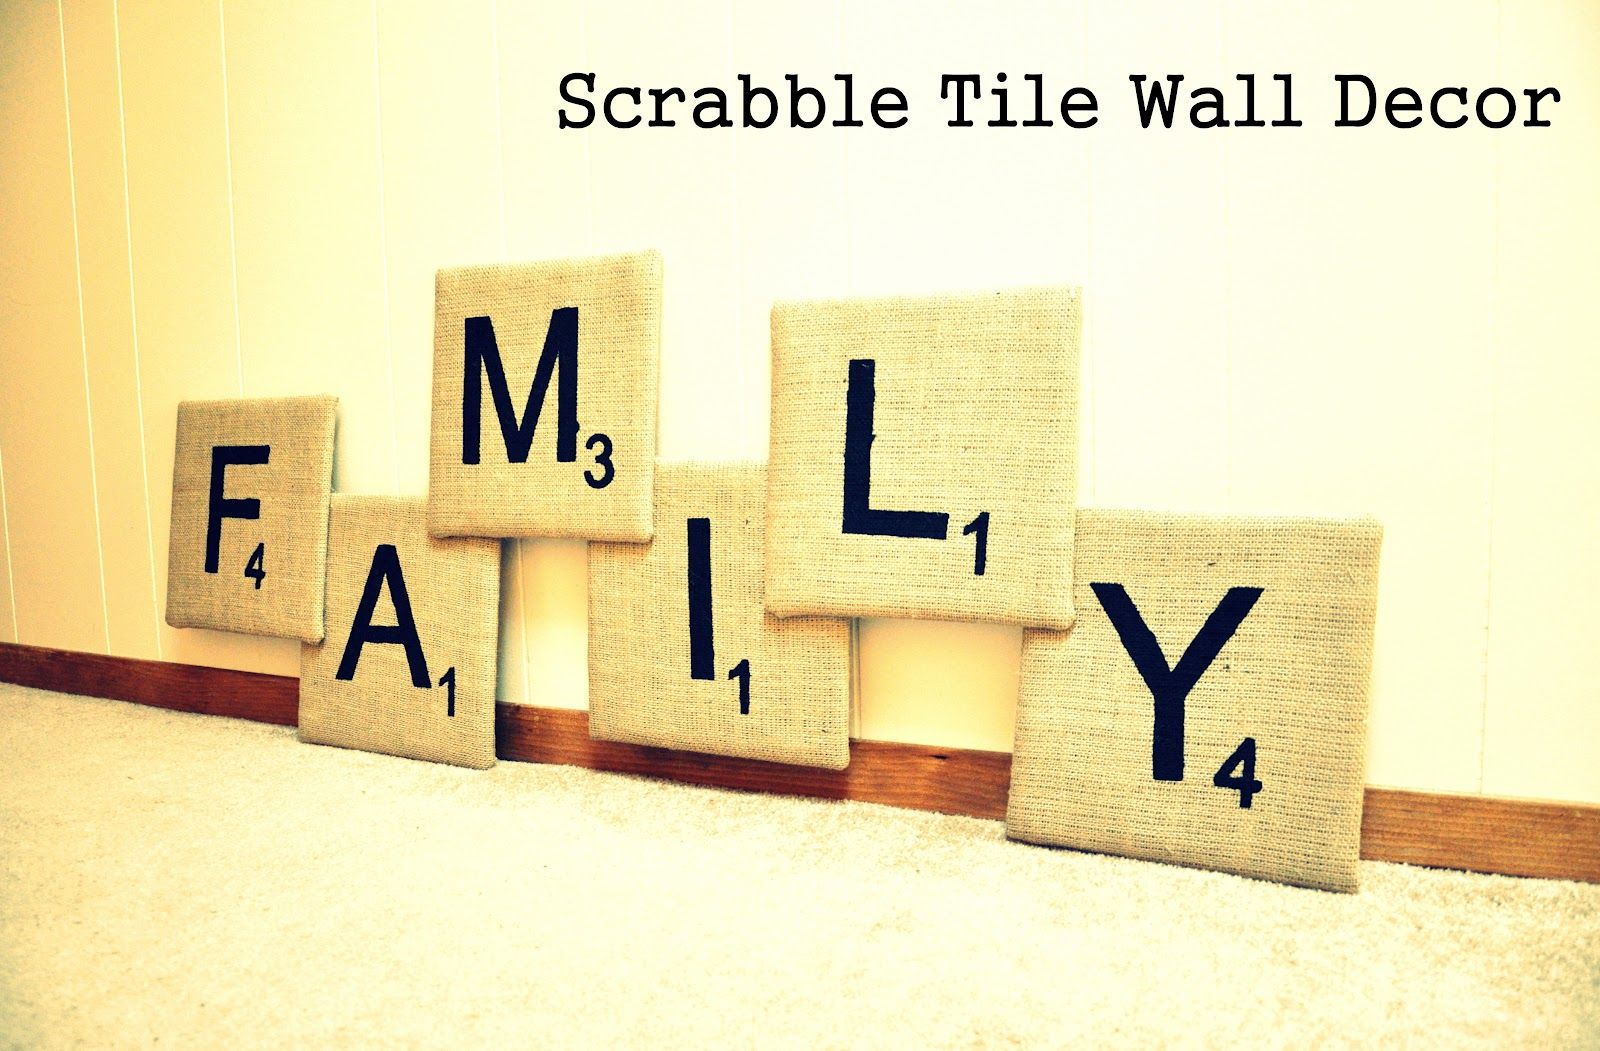 Pin by Joanne Junor Reid on SCRABBLE Tiles: Crafts | Pinterest ...